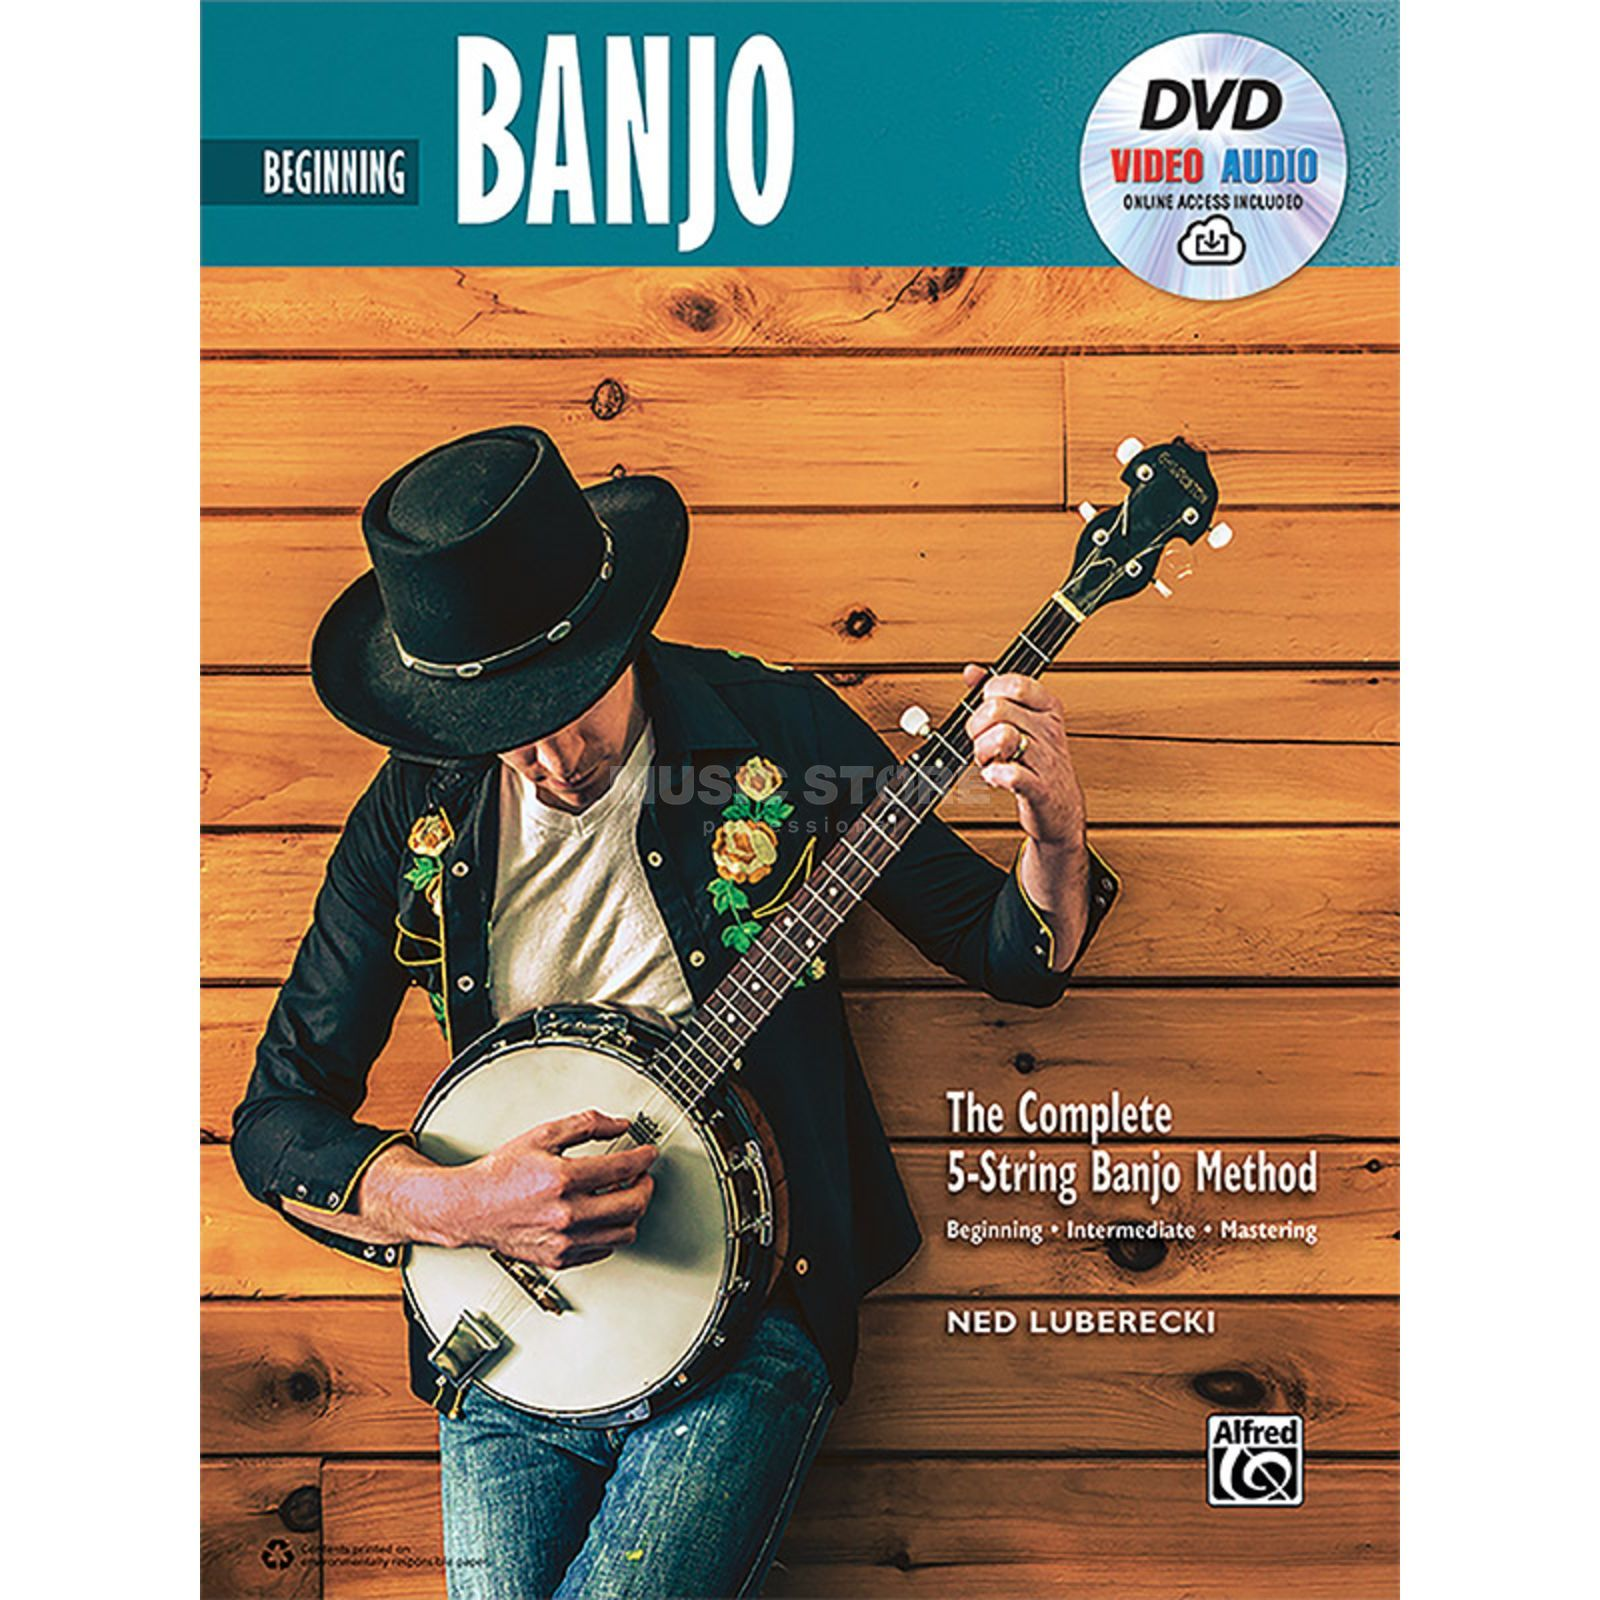 Alfred Music The Complete 5-String Banjo Method: Beginning Banjo Product Image